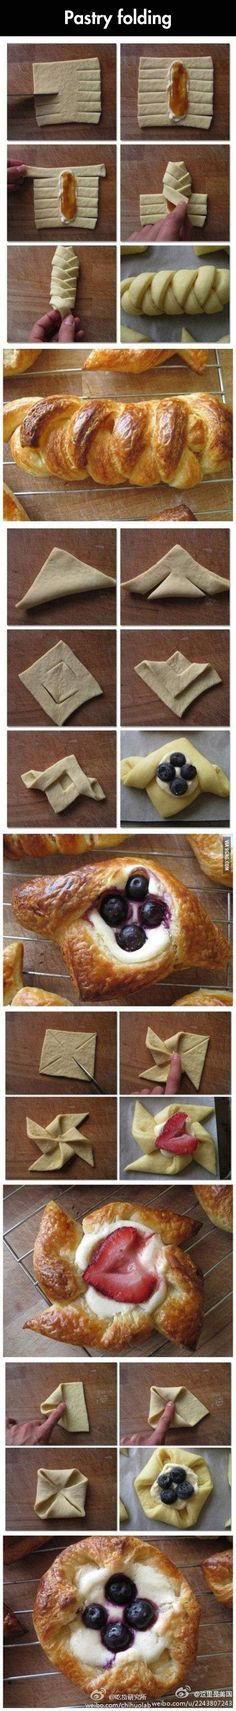 Mini puff pastries